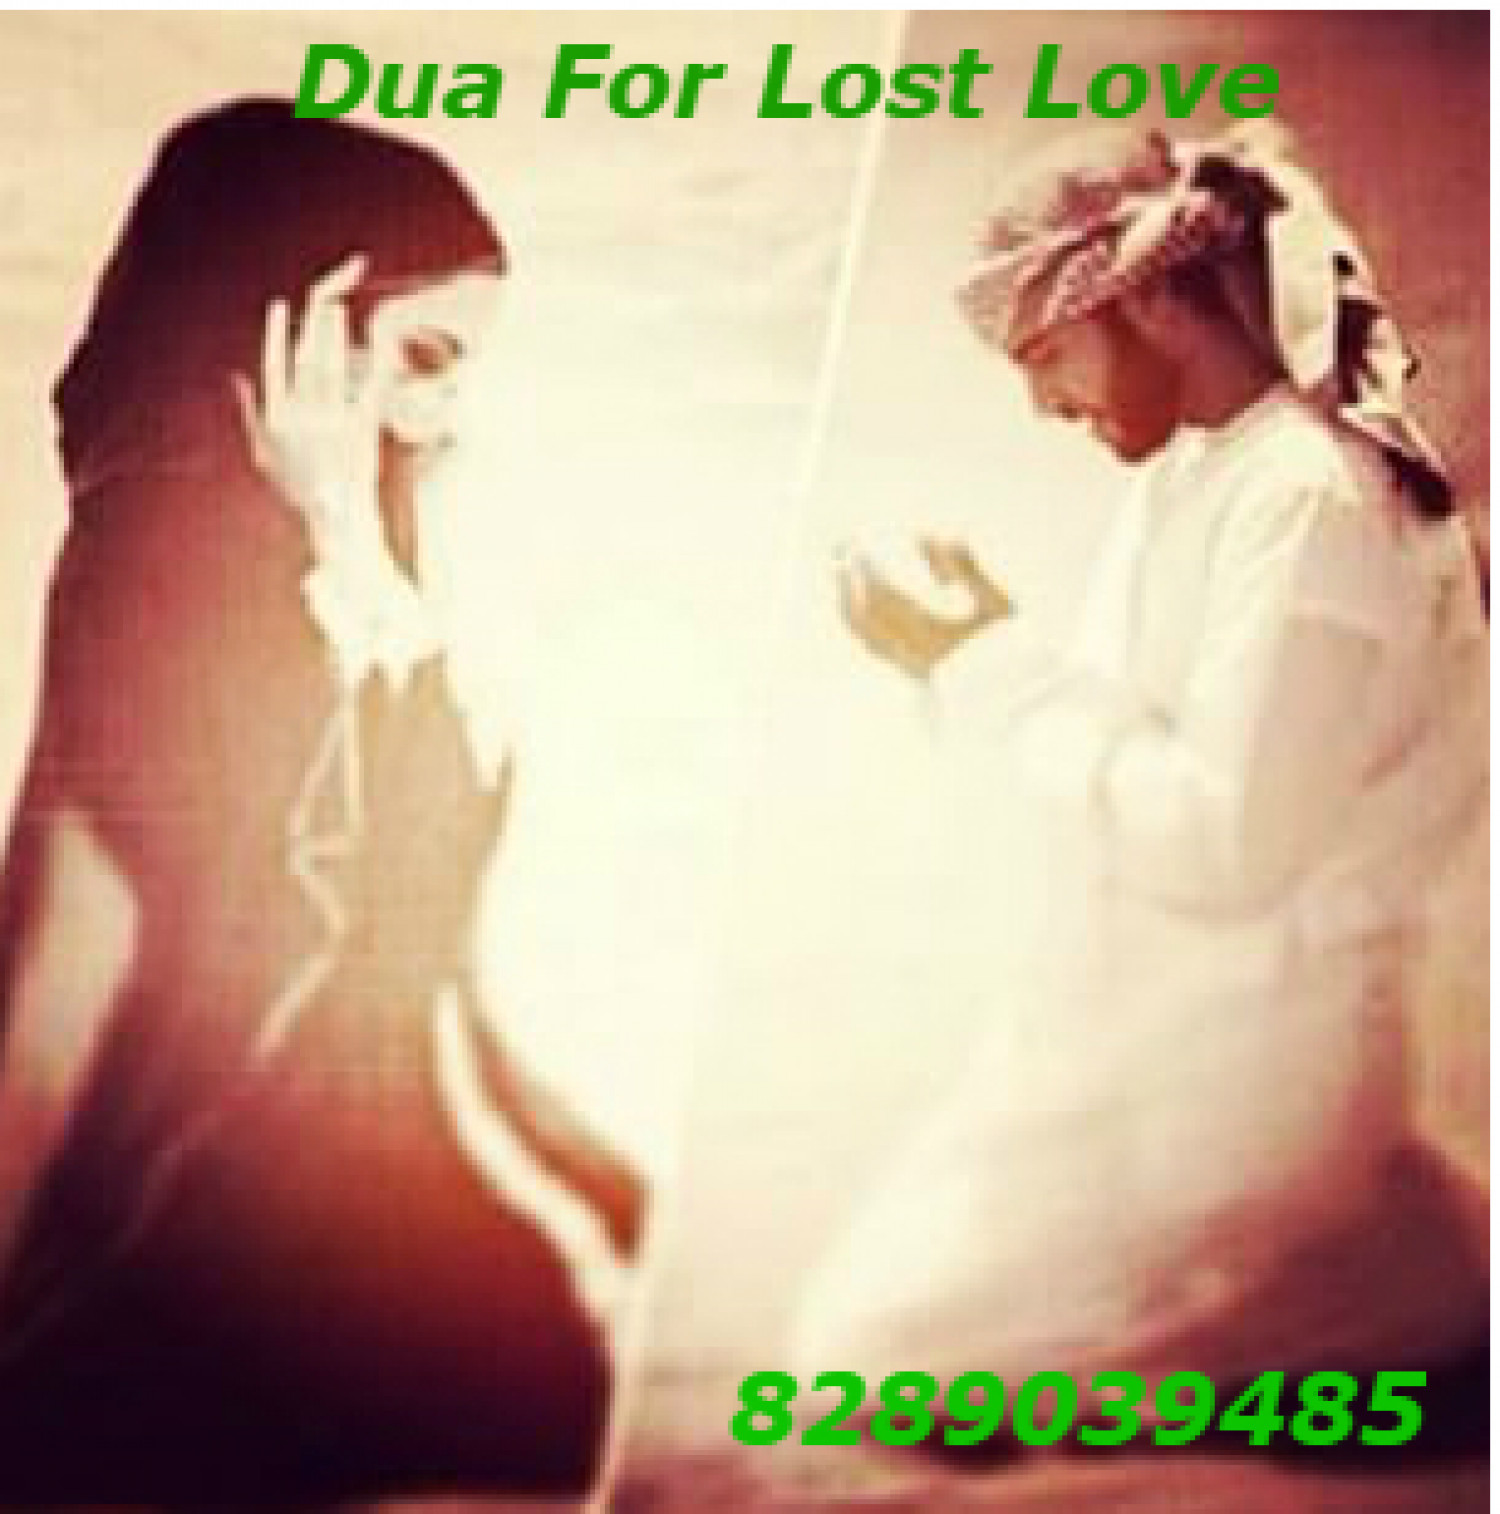 Dua for lost love Infographic